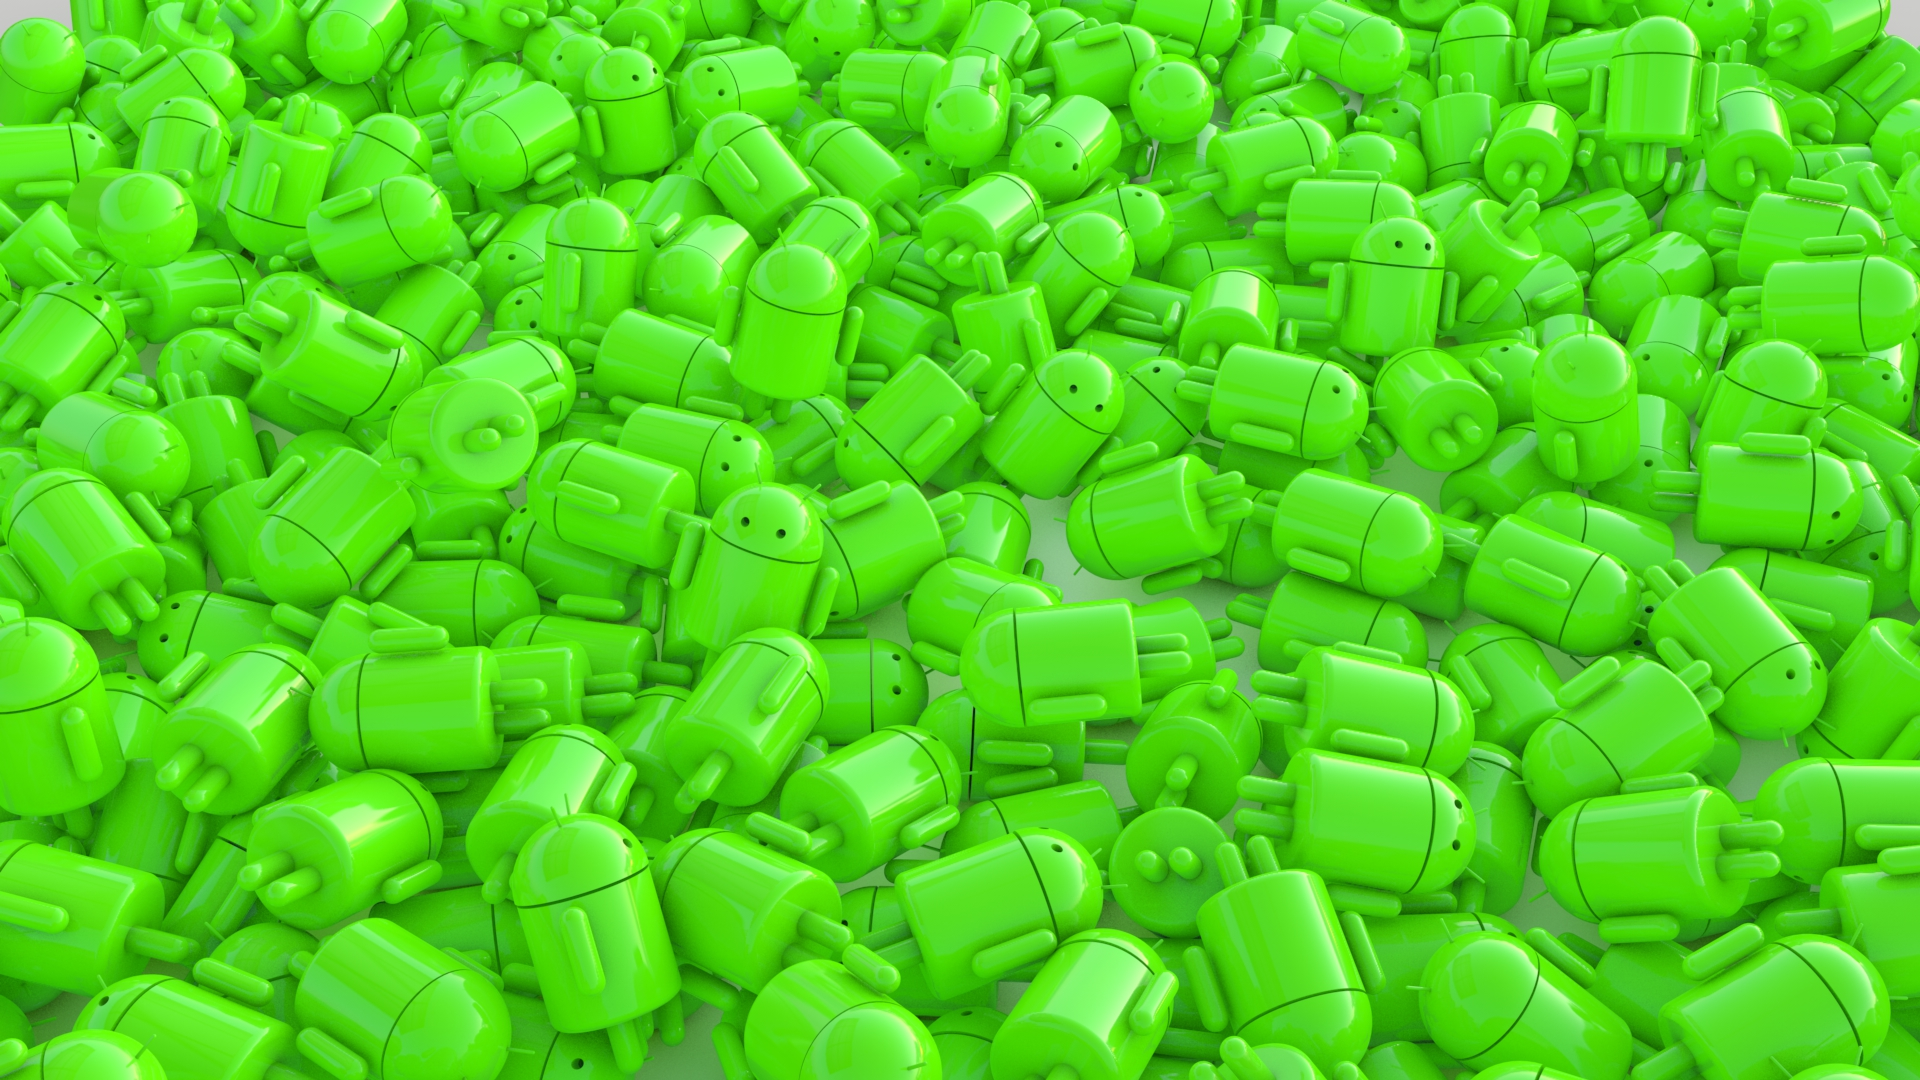 Miniature Android Hd Wallpaper